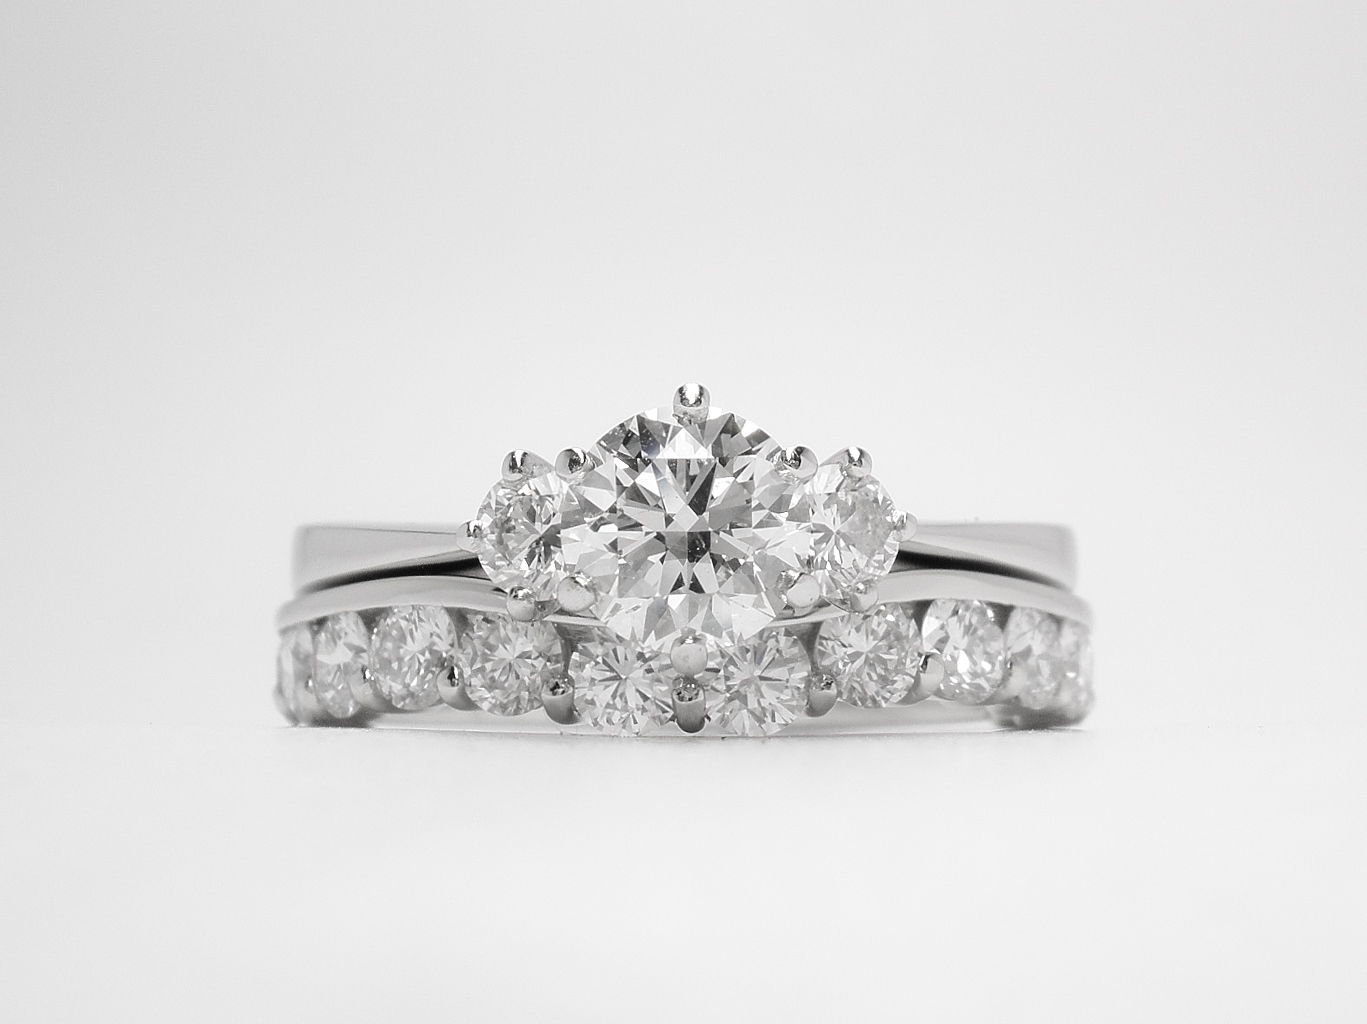 A 14 stone round brilliant cut part channel set eternity ring mounted in platinum and shaped to fit around a 3 stone diamond ring.